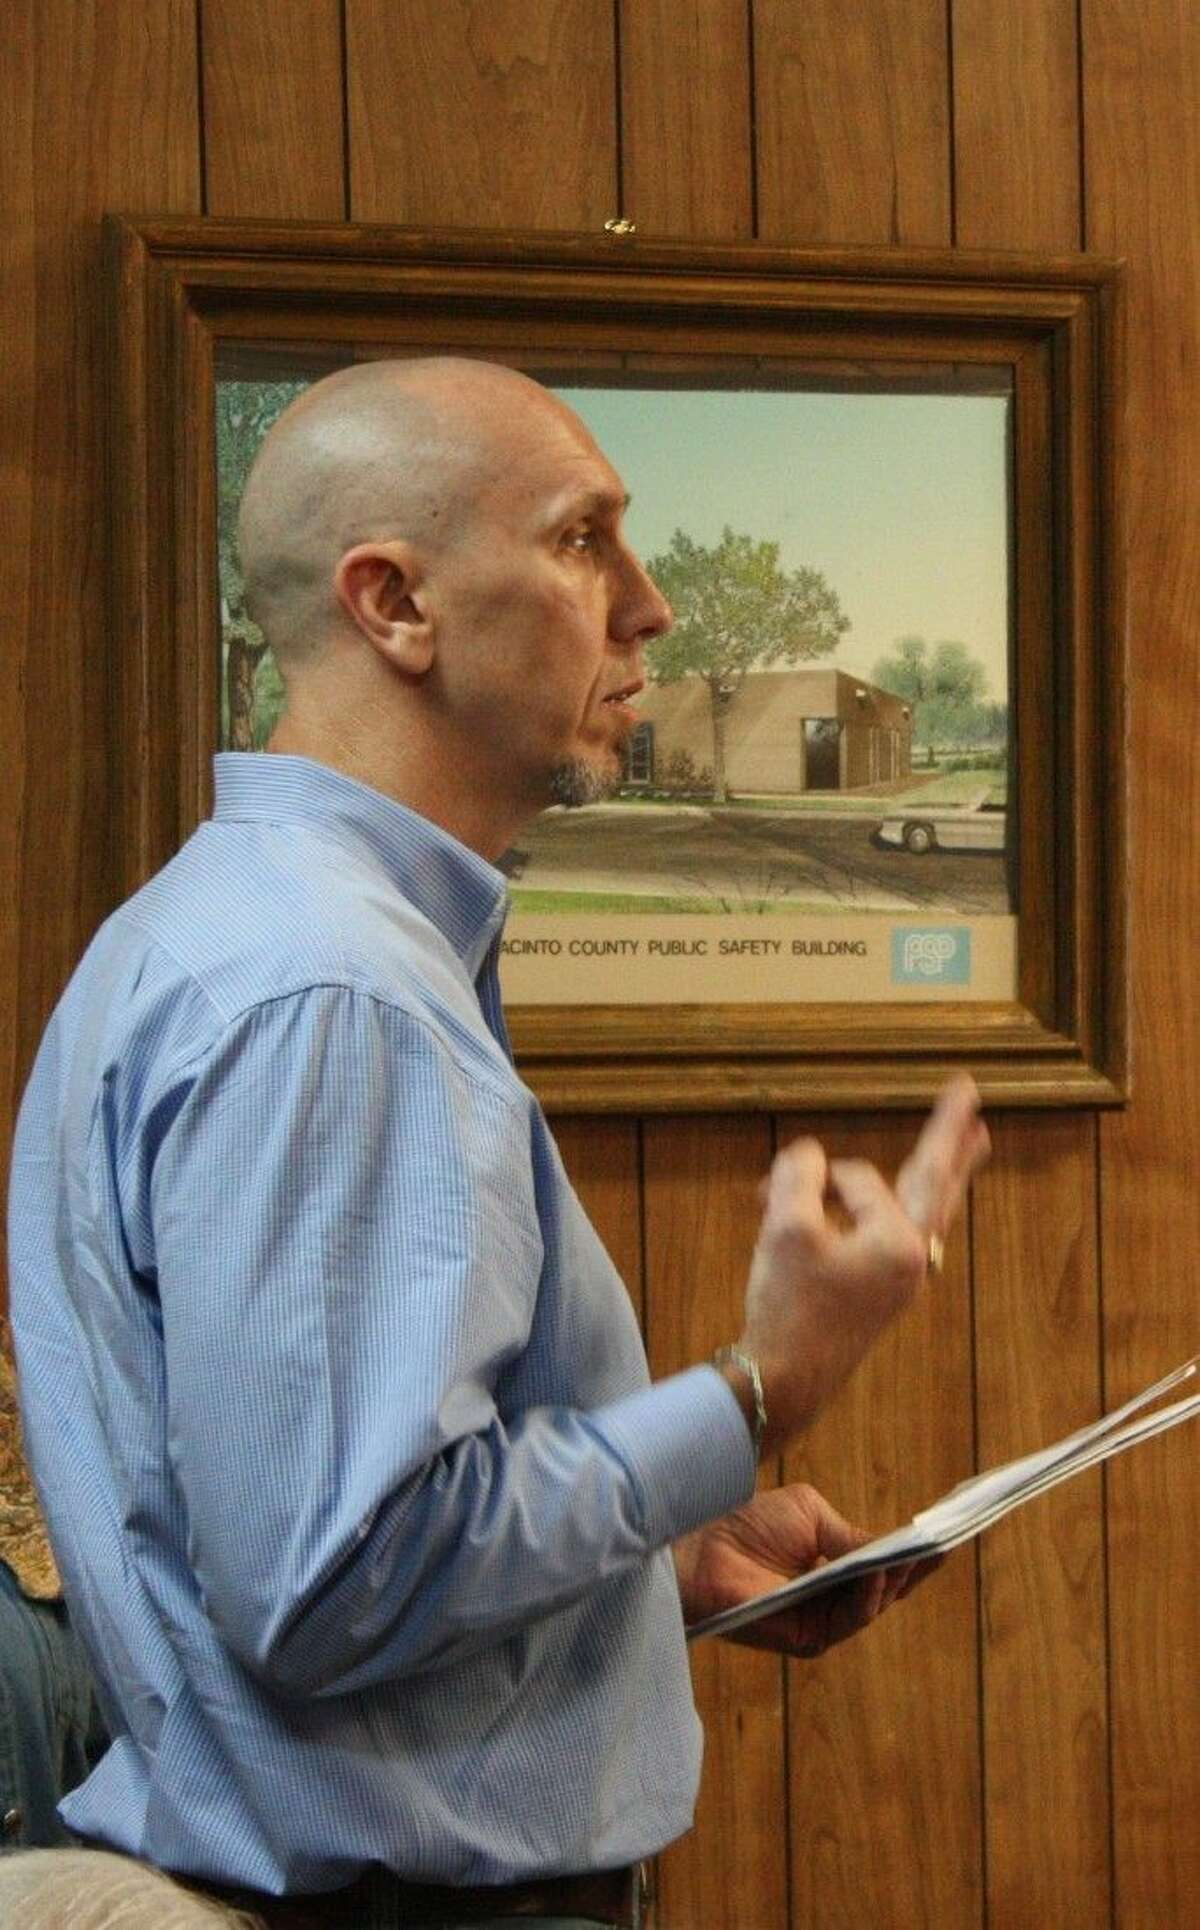 James Washburn of LCJ Companies discusses the plan for the acquisition and rehabilitation of the Hillside Terrace apartments during the San Jacinto County Commissioners Court meeting on Dec. 9.